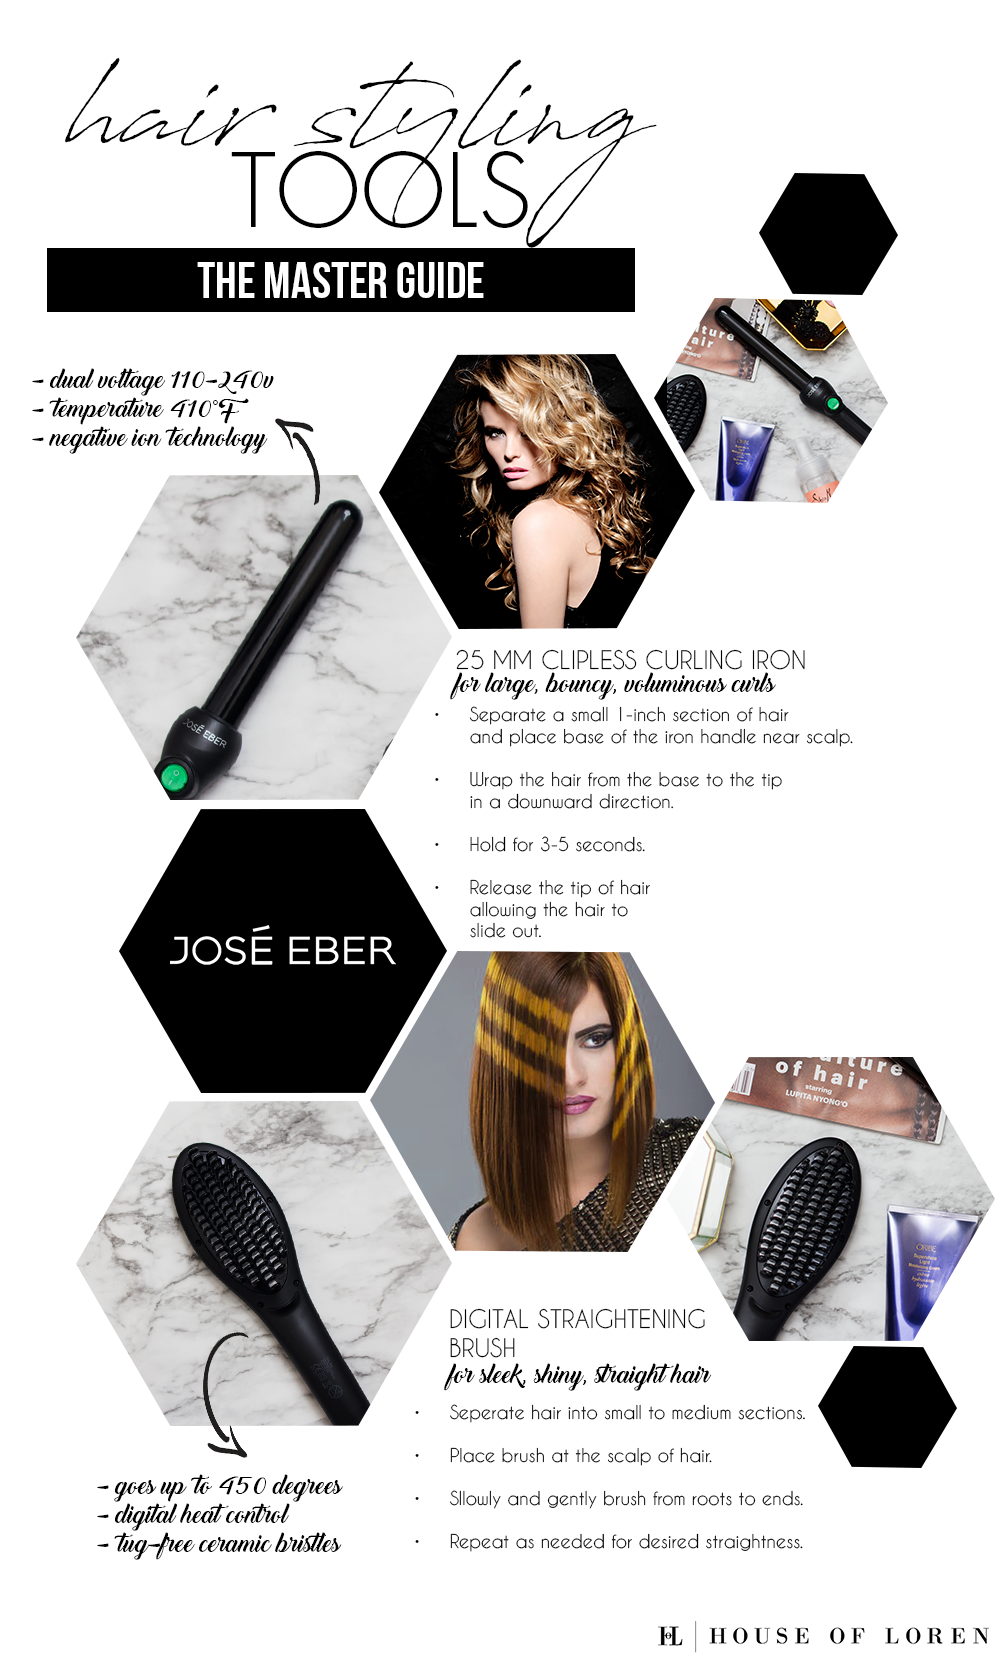 Pro Hair Styling Tips - House Of Loren